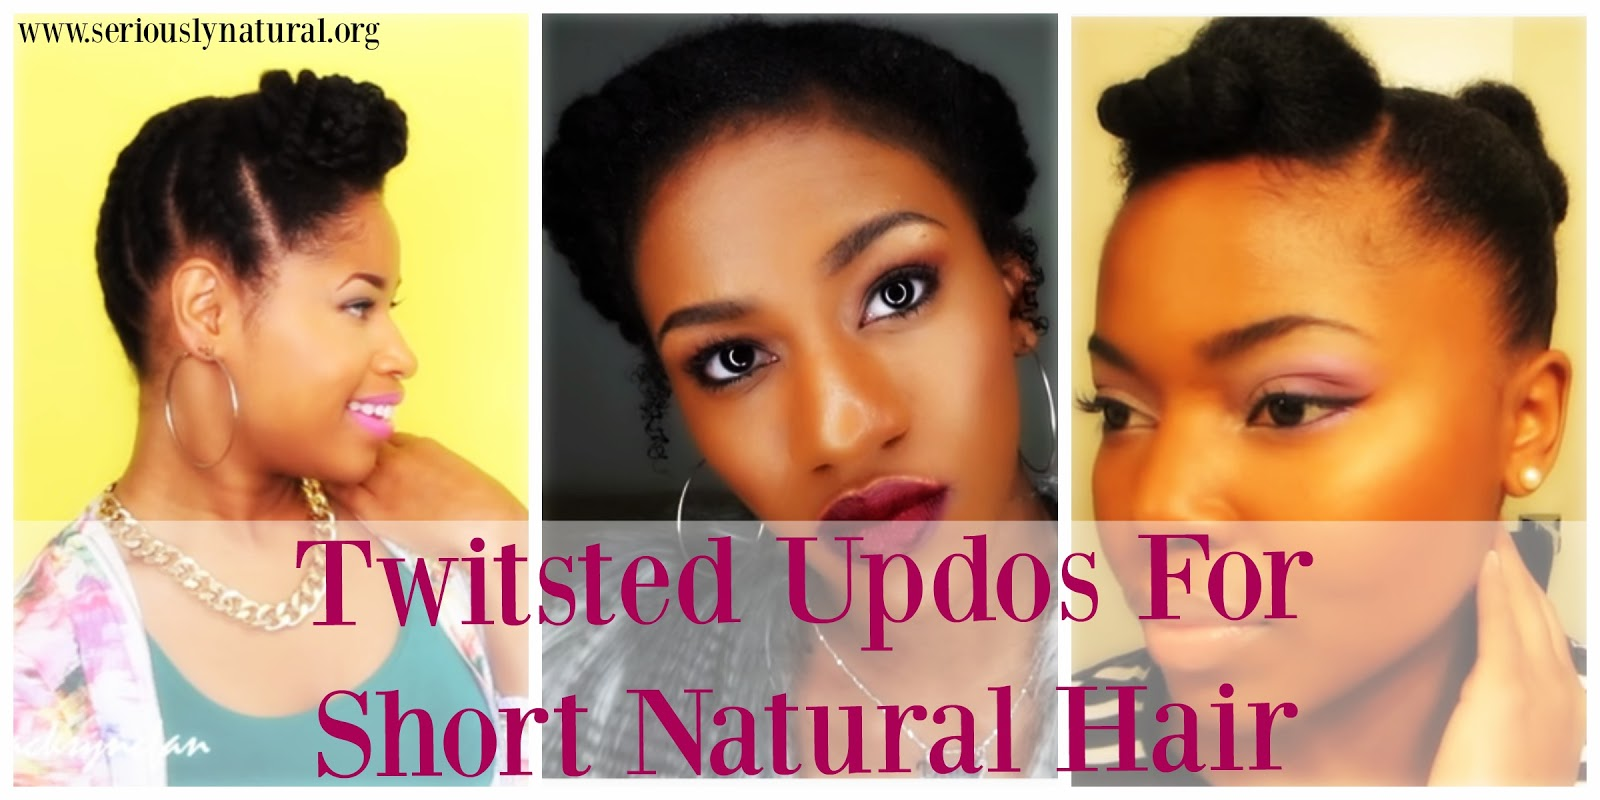 Twisted Updos For Short Natural Hair Seriously Natural